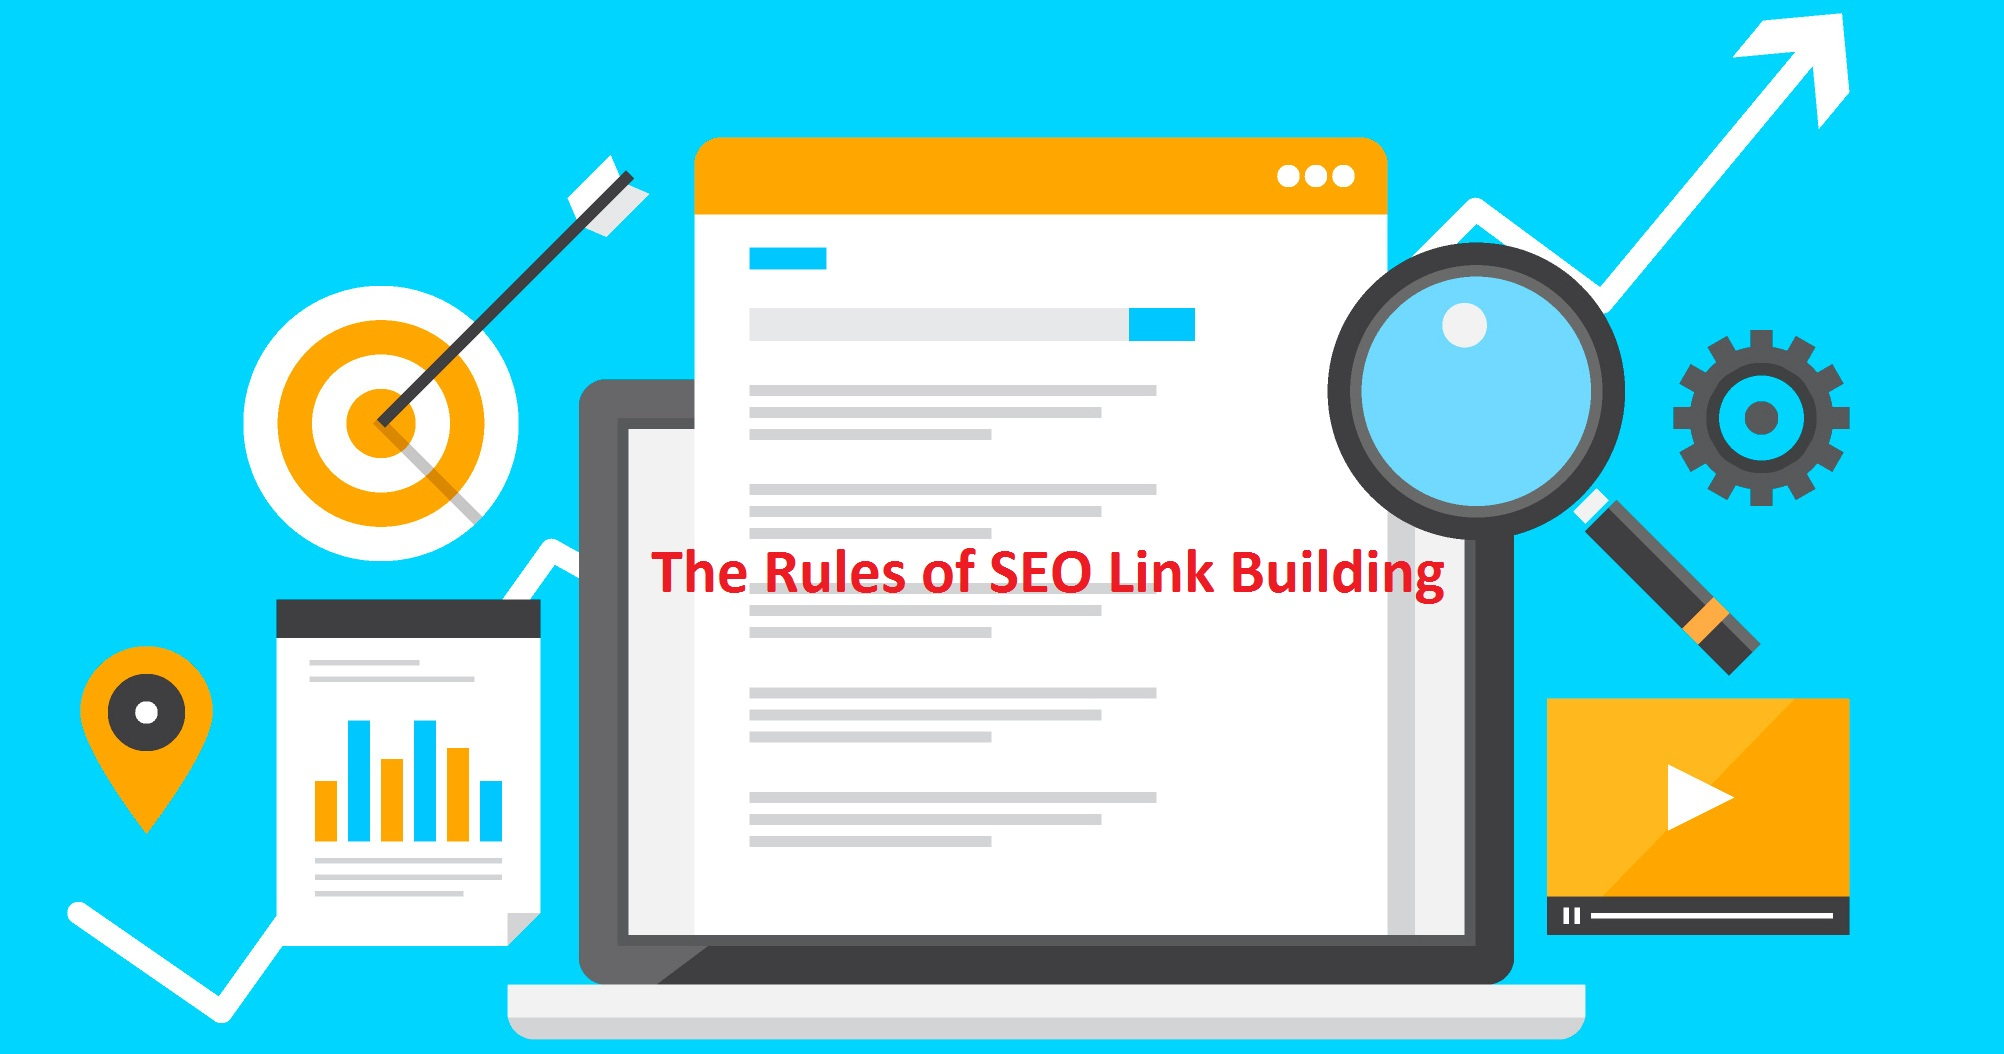 The Rules of SEO Link Building